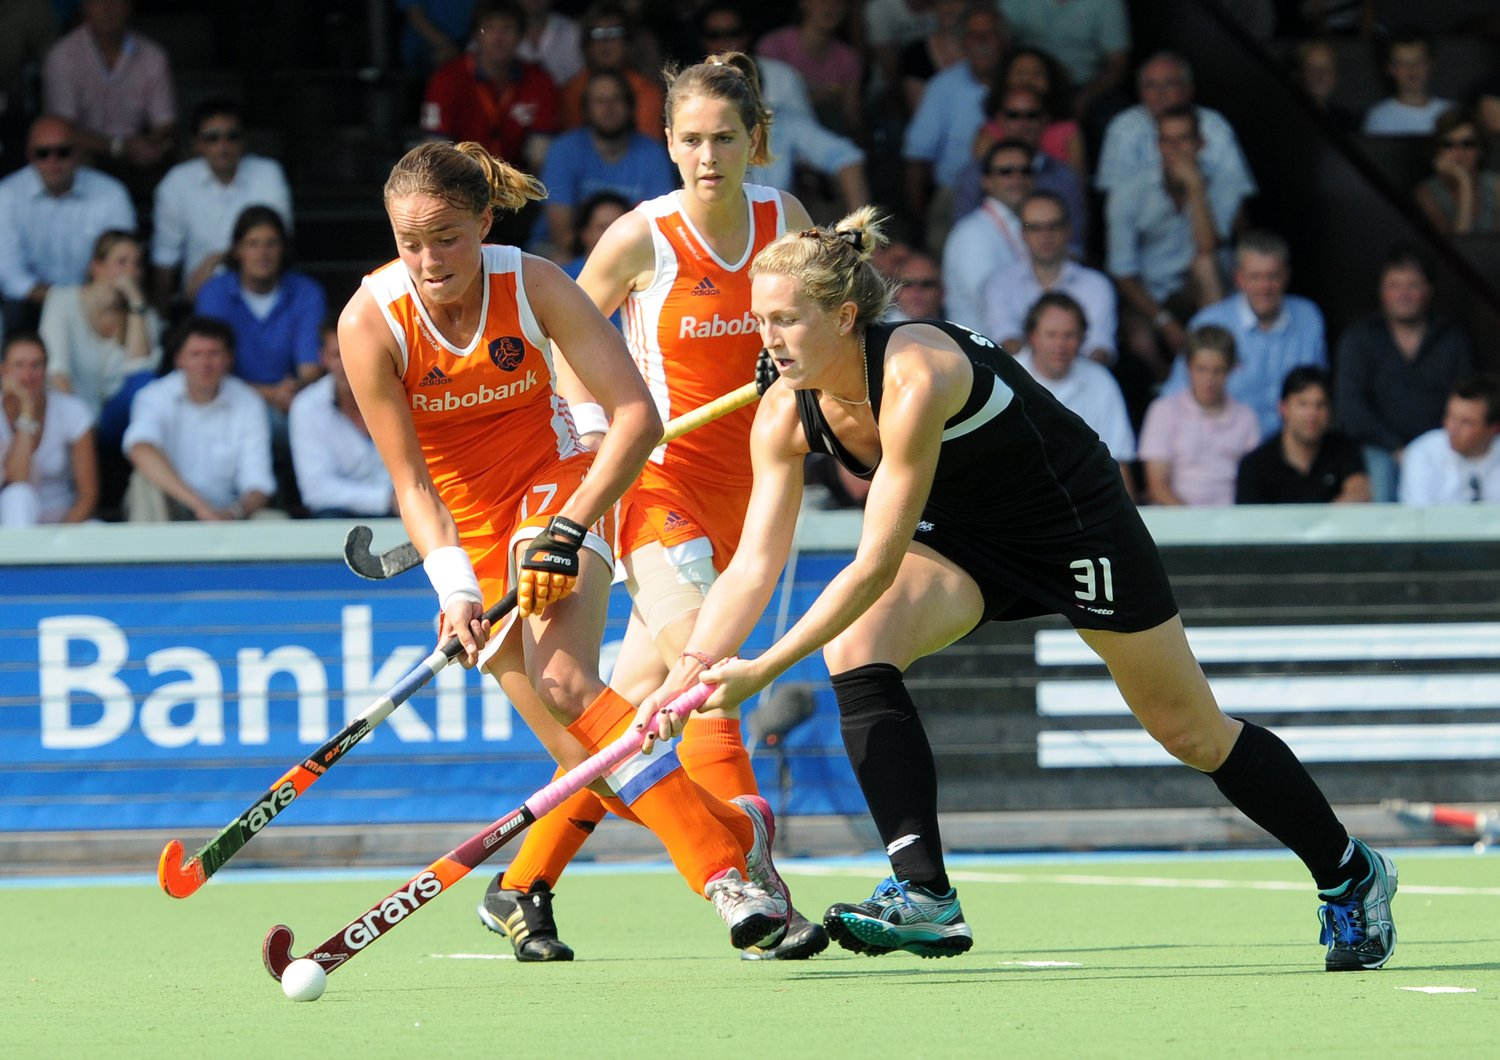 New Zealand are taking the Michelsen (right) (c) Andy Smith